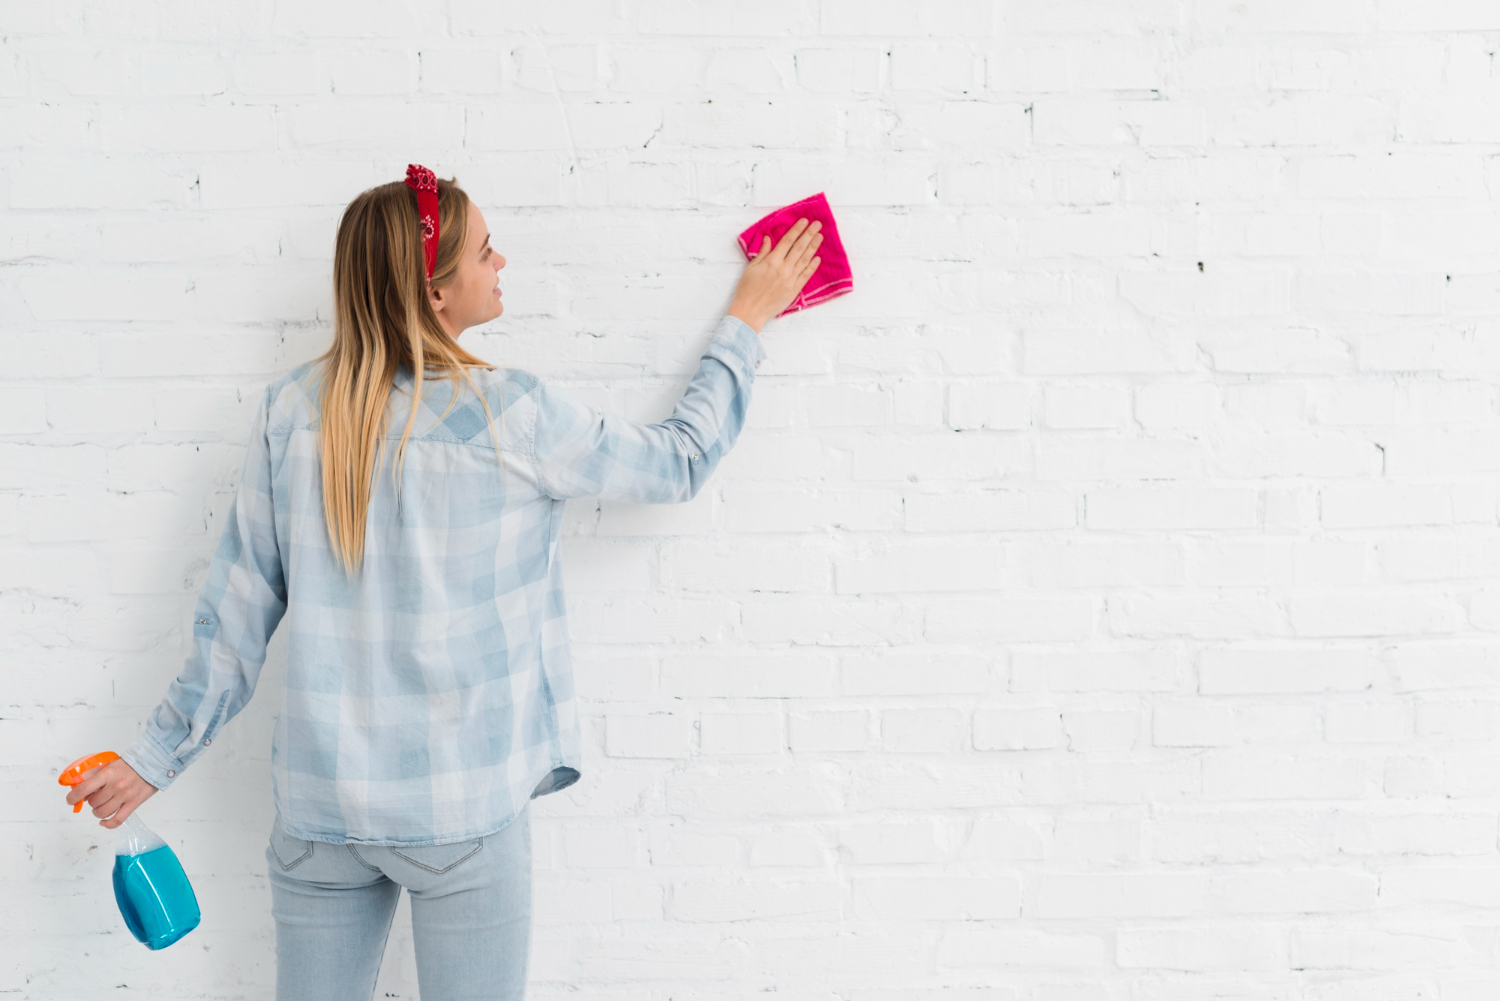 front-view-woman-cleaning-wall